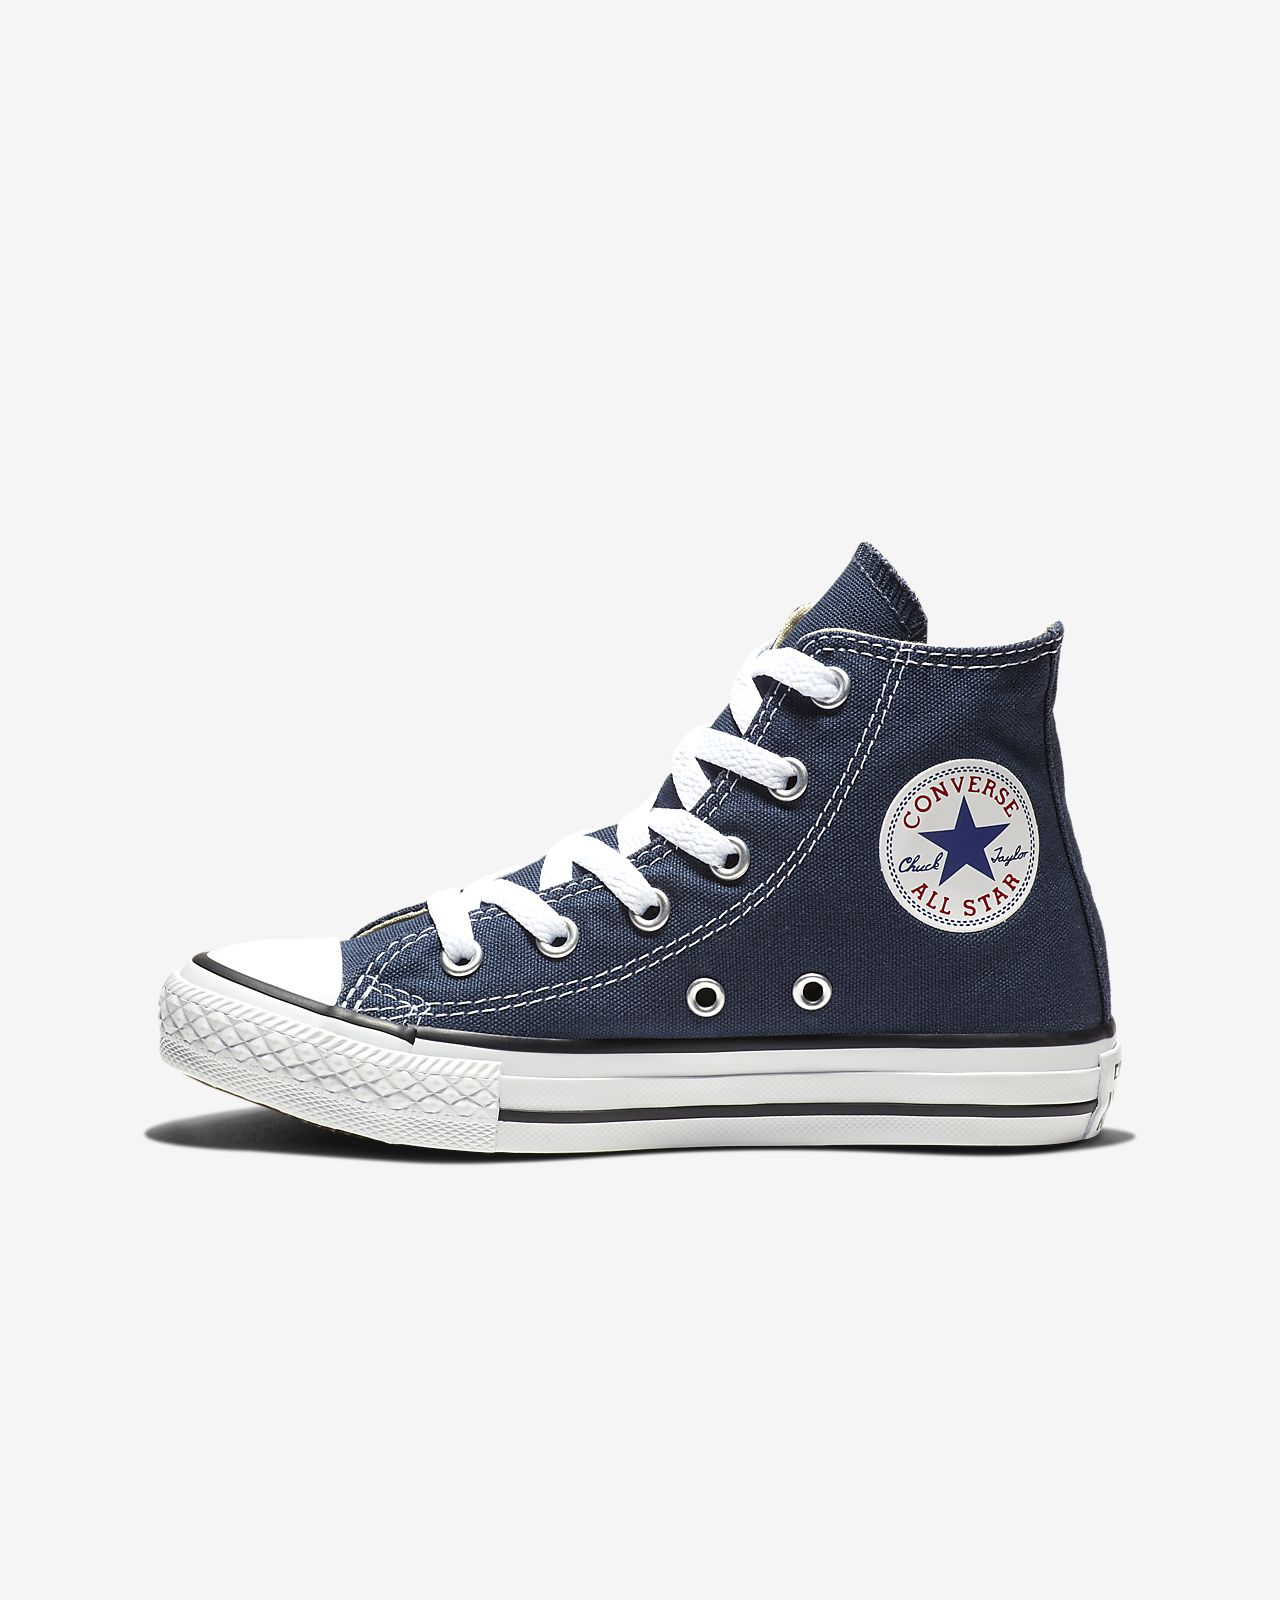 cce8ee1dde24 Converse Chuck Taylor All Star High Top (10.5c-3y) Little Kids  Shoe ...